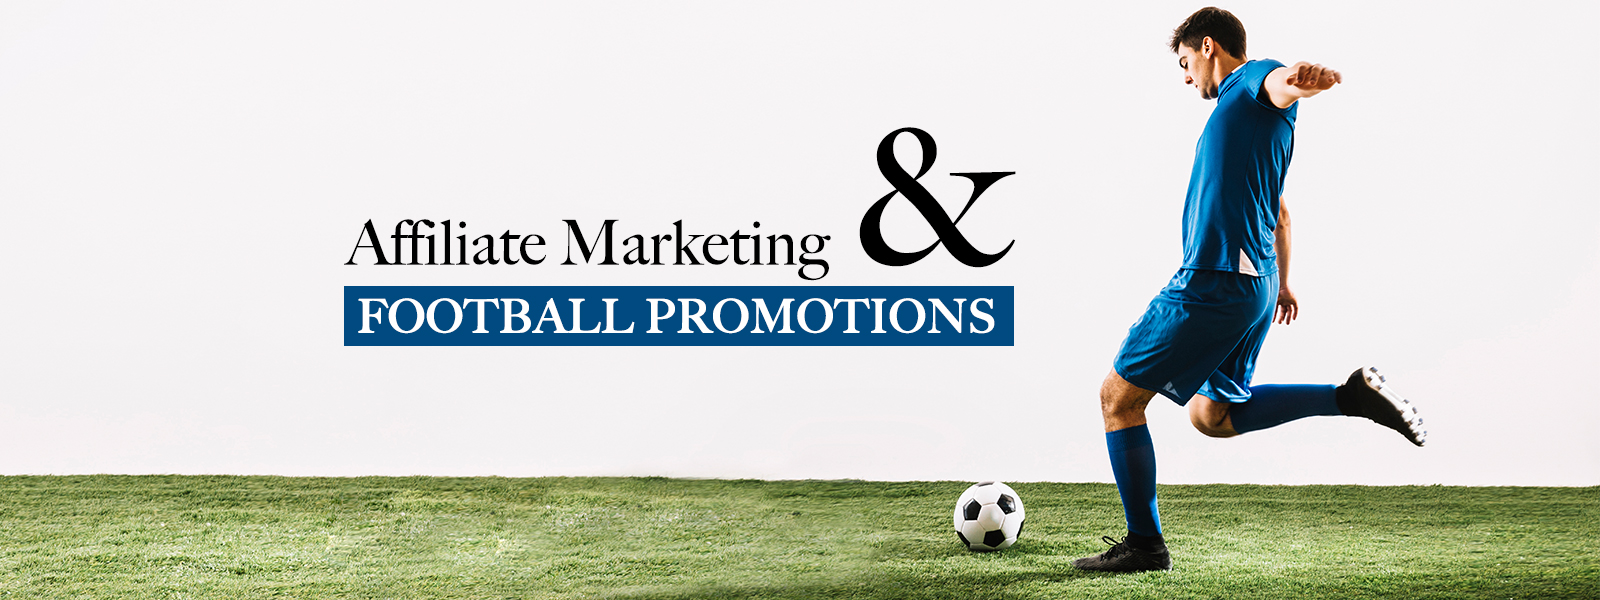 Affiliate Marketing To Promote Your Business